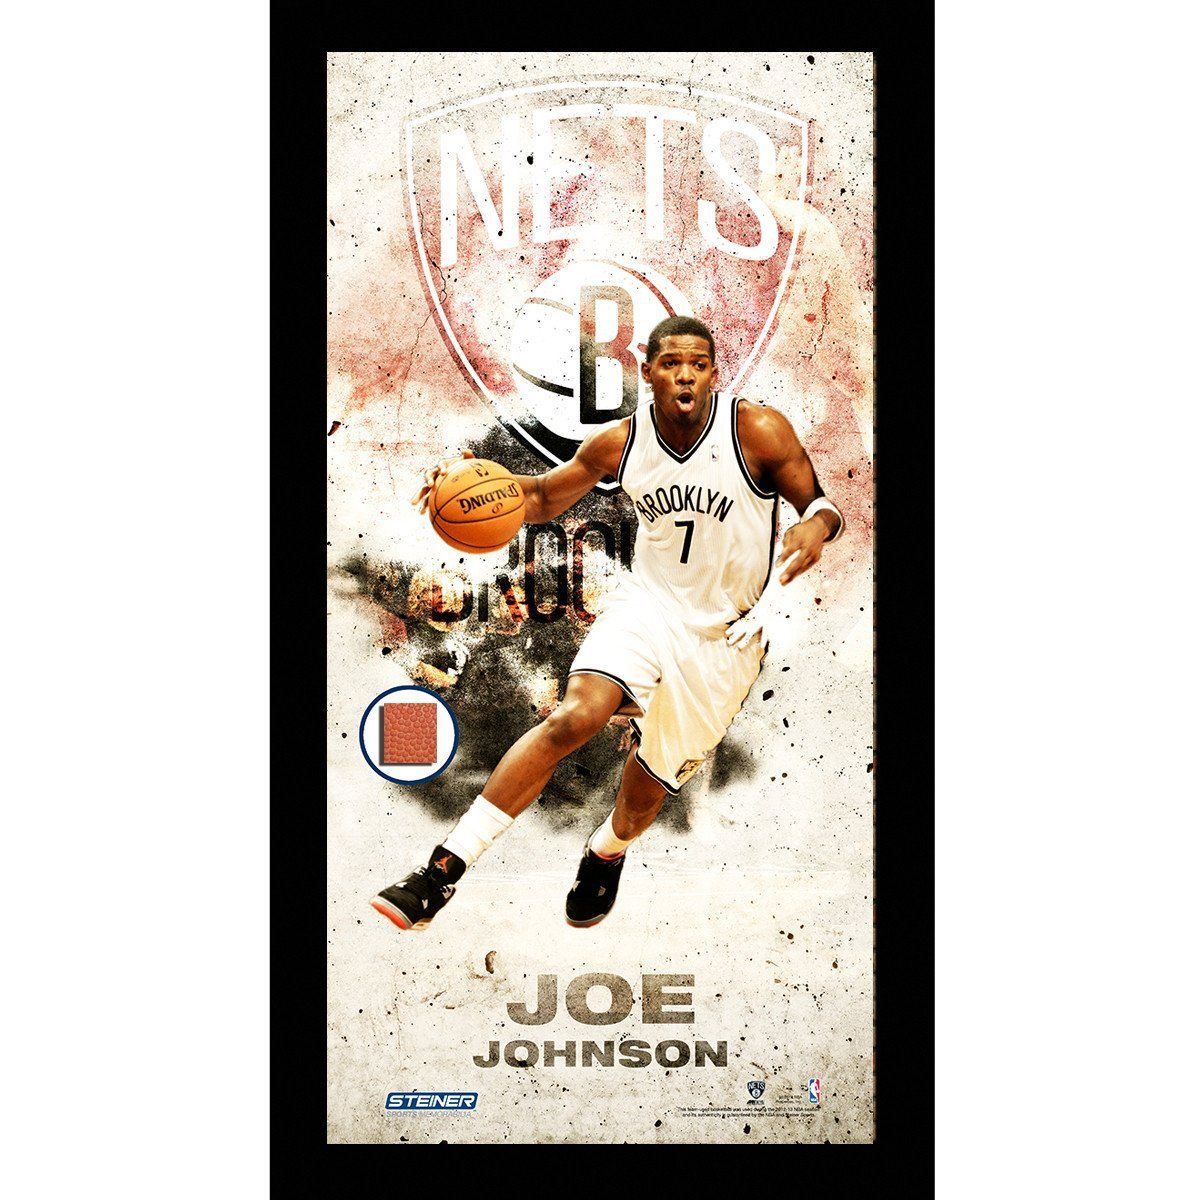 Joe Johnson Brooklyn Nets Player Profile Framed 10x20 Photo Collage Polybag W Game Used Basketball